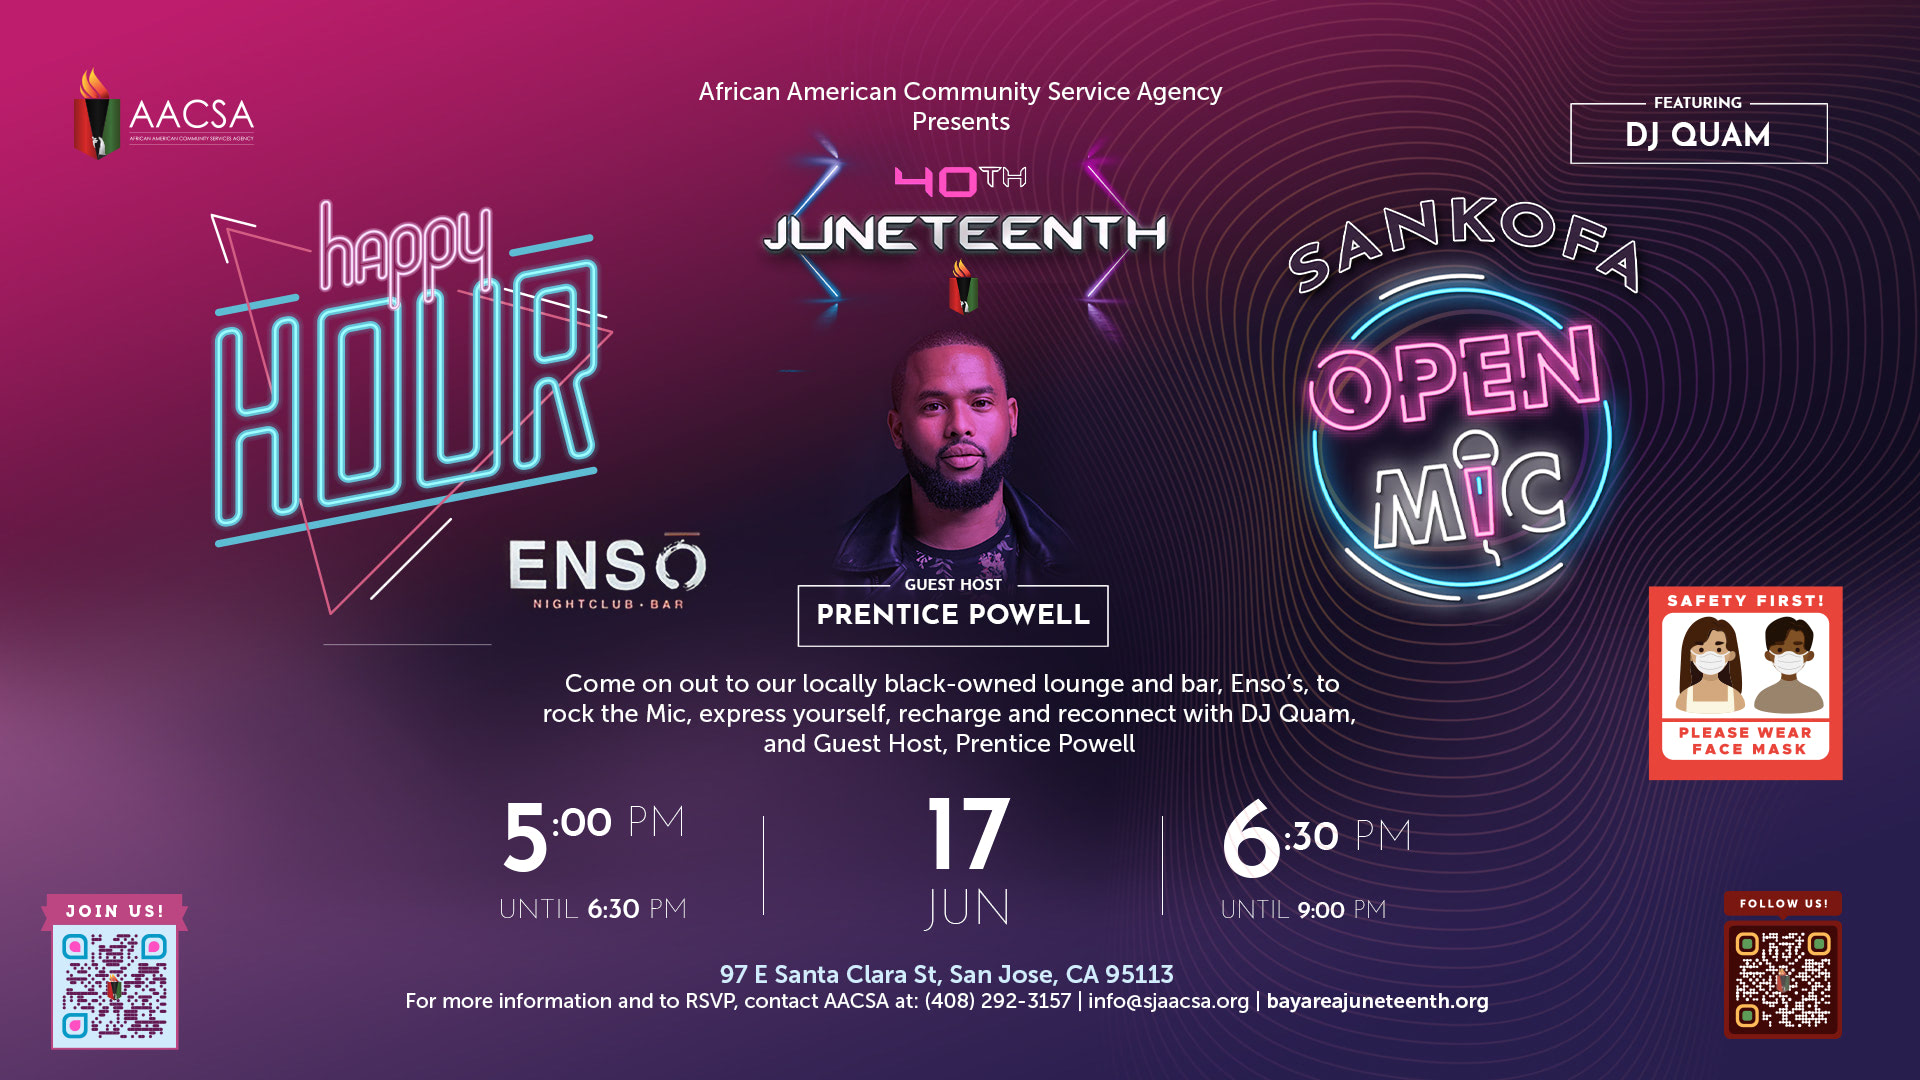 """Banner for the 40th Annual Juneteenth In The Park Celebration Week event: Juneteenth Happy Hour & Sankofa Open Mic. Starting with the """"Happy Hour"""" at 5:00pm until 6:30pm. Followed by the """"Sankofa Open Mic"""" featuring guest host Prentice Powell from 6:30pm until 10:00pm EST. Click the banner to see event details & sign-up!"""